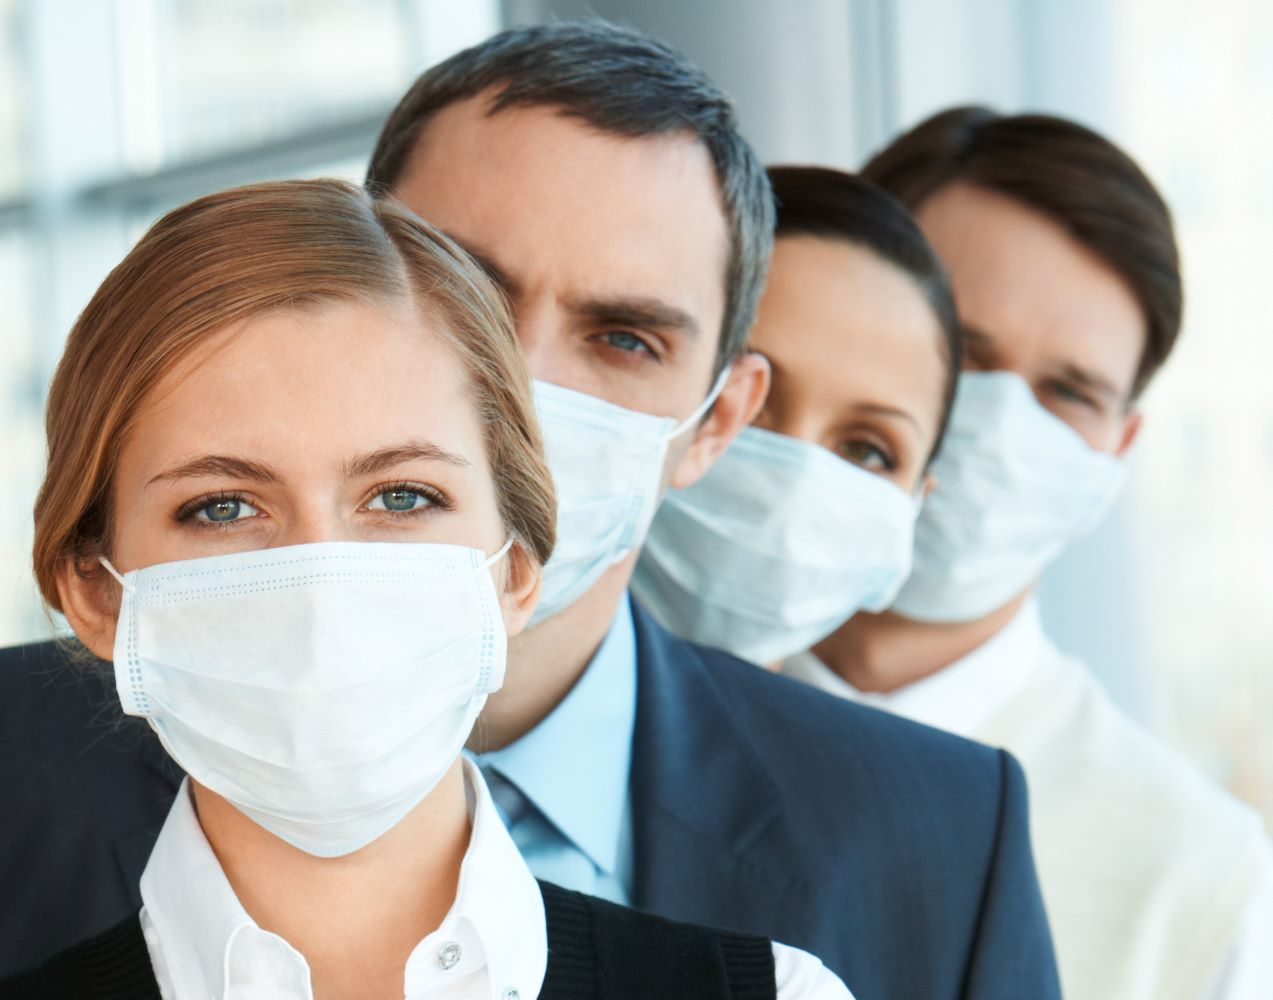 Human Resources & Finance professionals expecting further pandemic restrictions & NHS waiting-list challenges